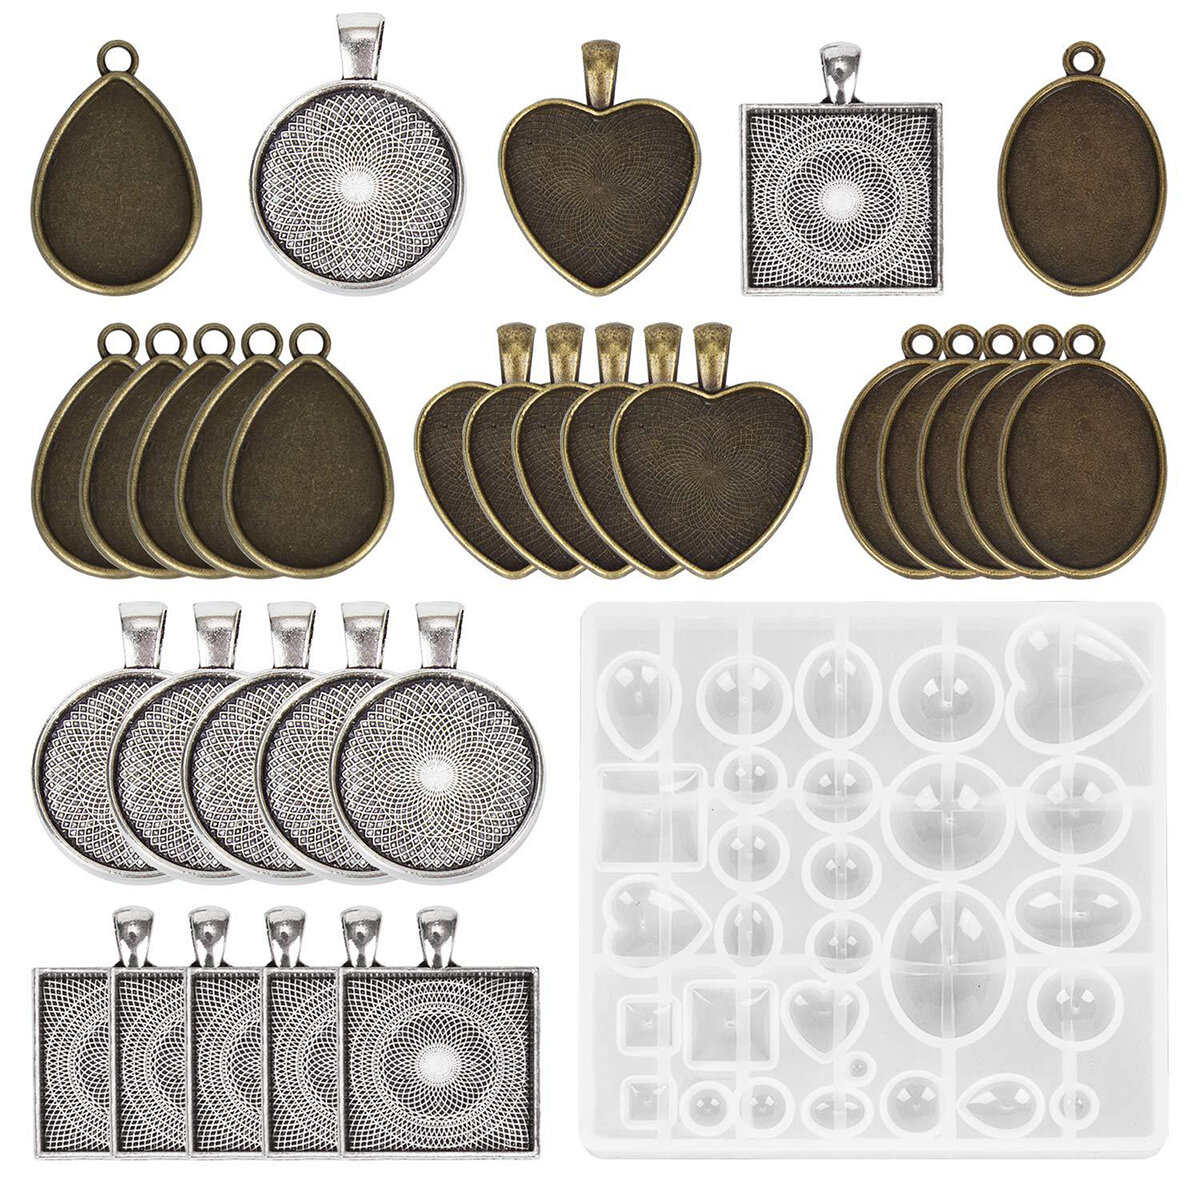 DIY Resin Casting Molds Silicone Jewelry Pendant Craft Making Mould Pendant Tray